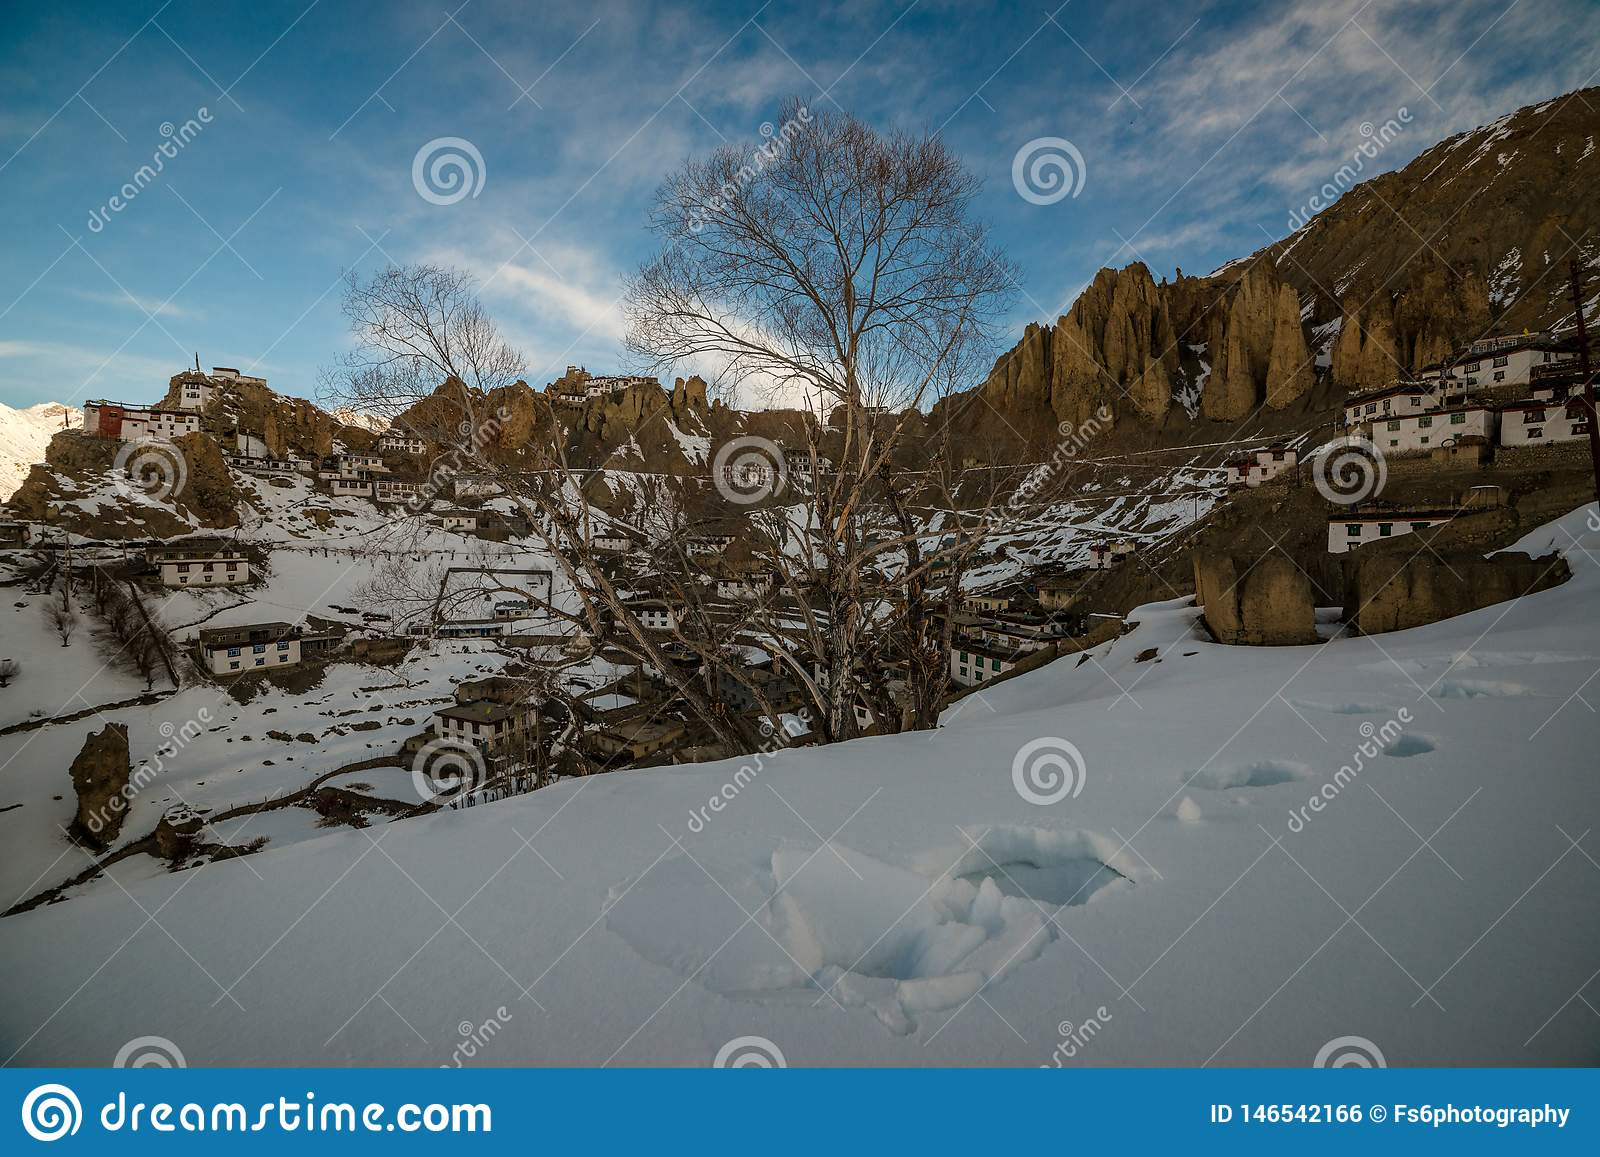 Sunrise in Himalayan Village in Mountain valley during sunrise. Natural Winter landscape